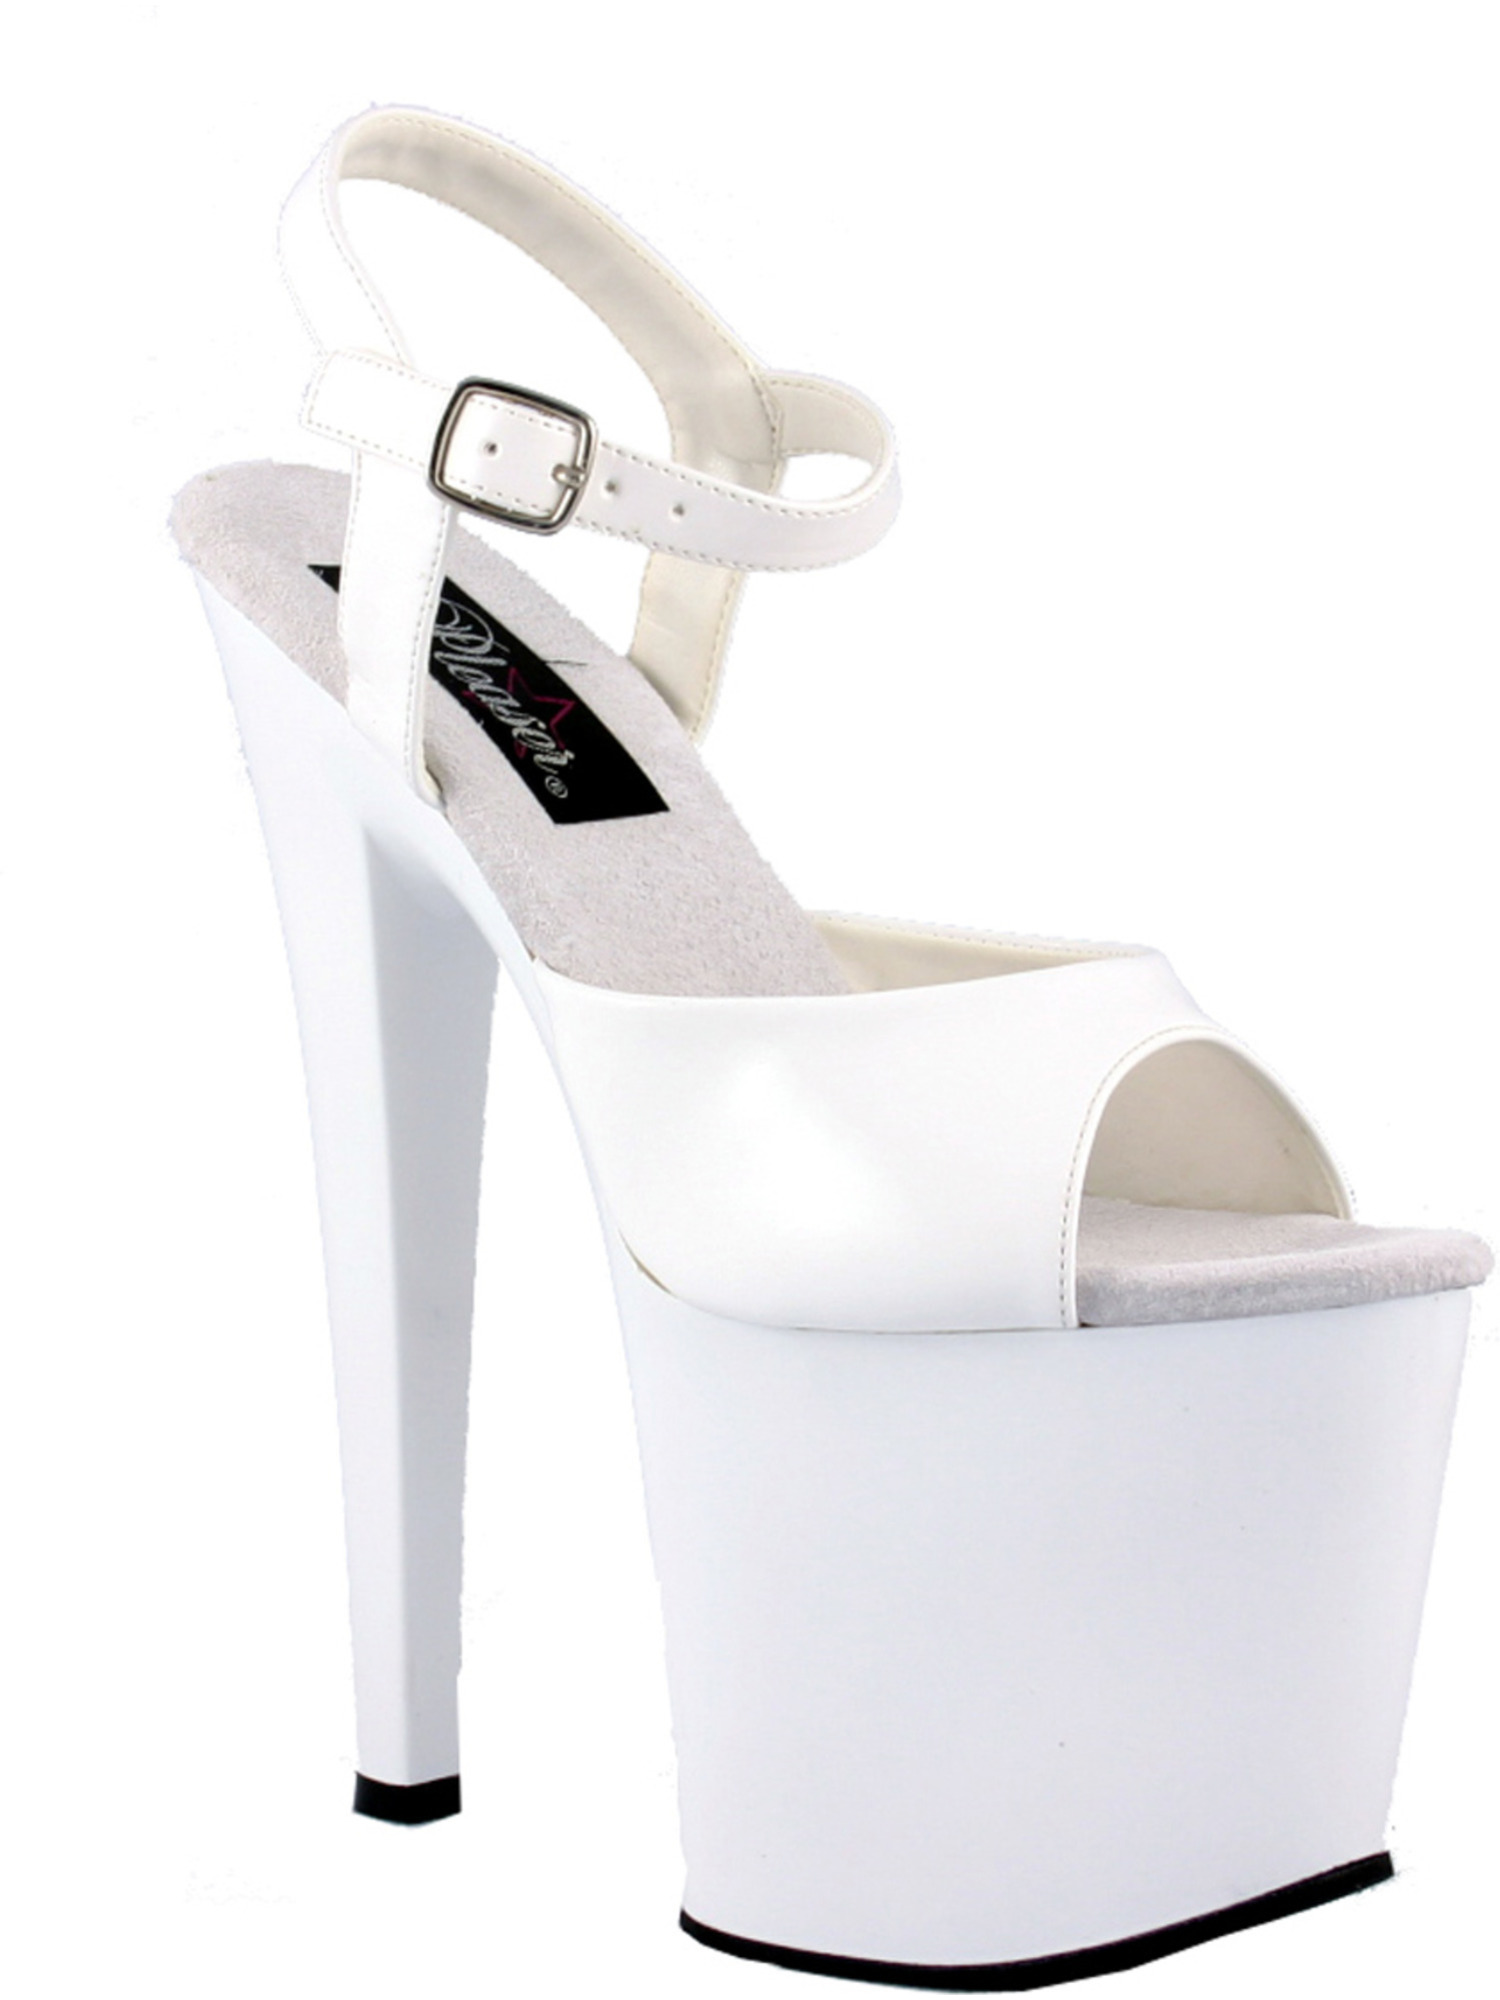 Womens All White Shoes 7 1/2 Inch Heels High Platform Sandals With Ankle Strap